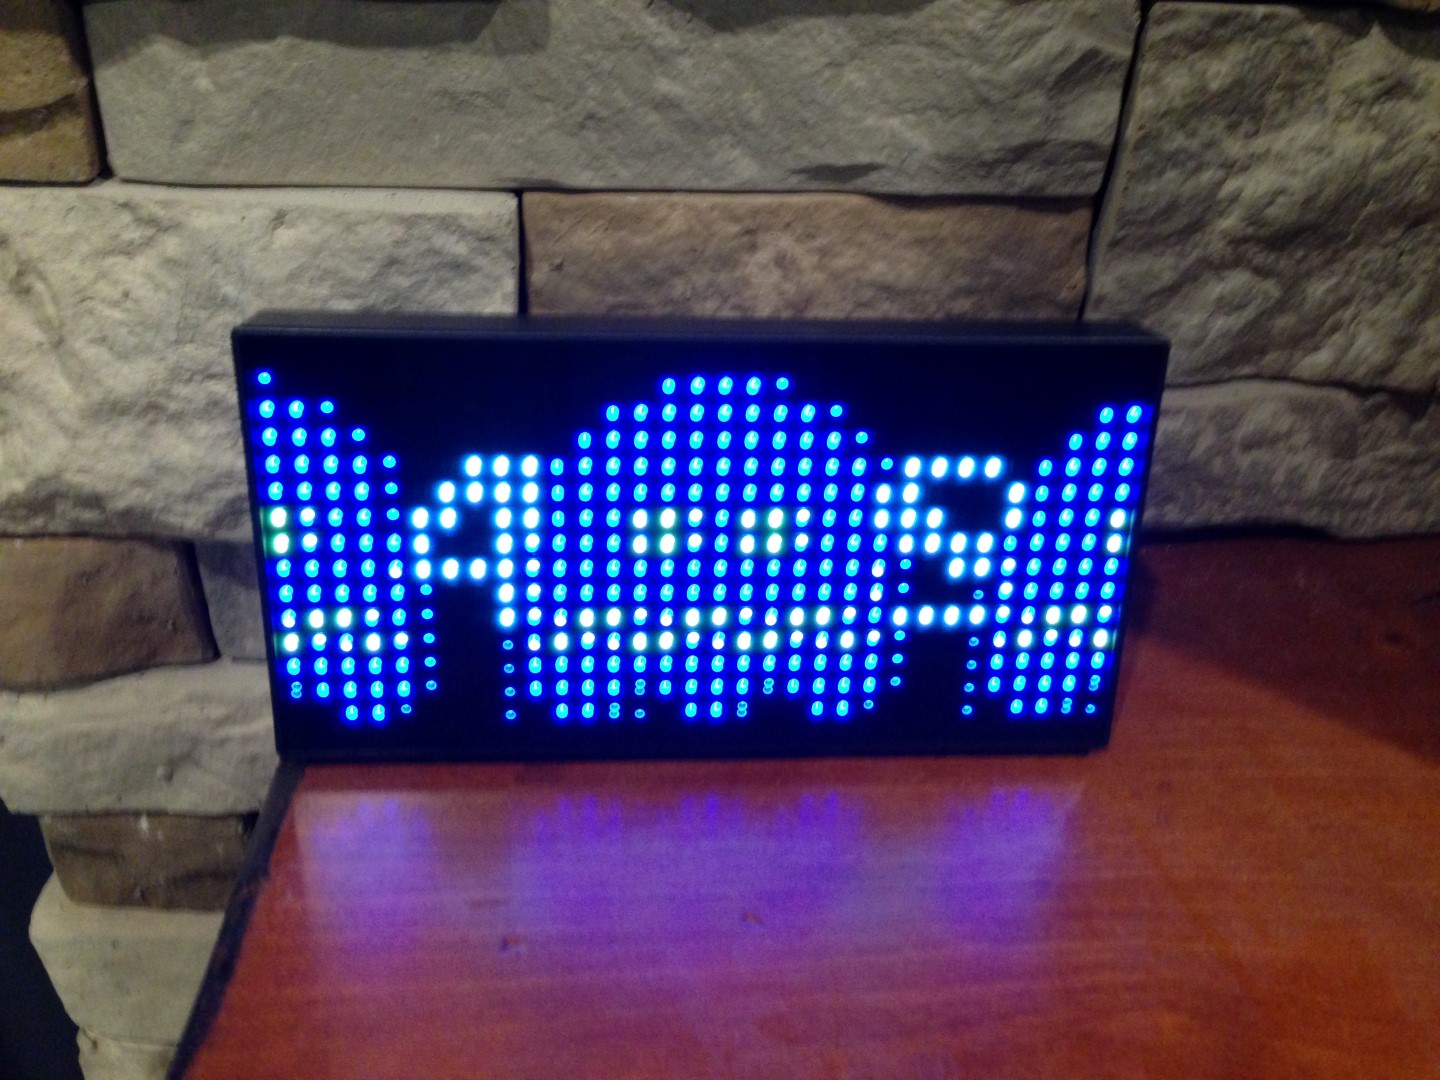 pacman clock with ghosts to be eaten